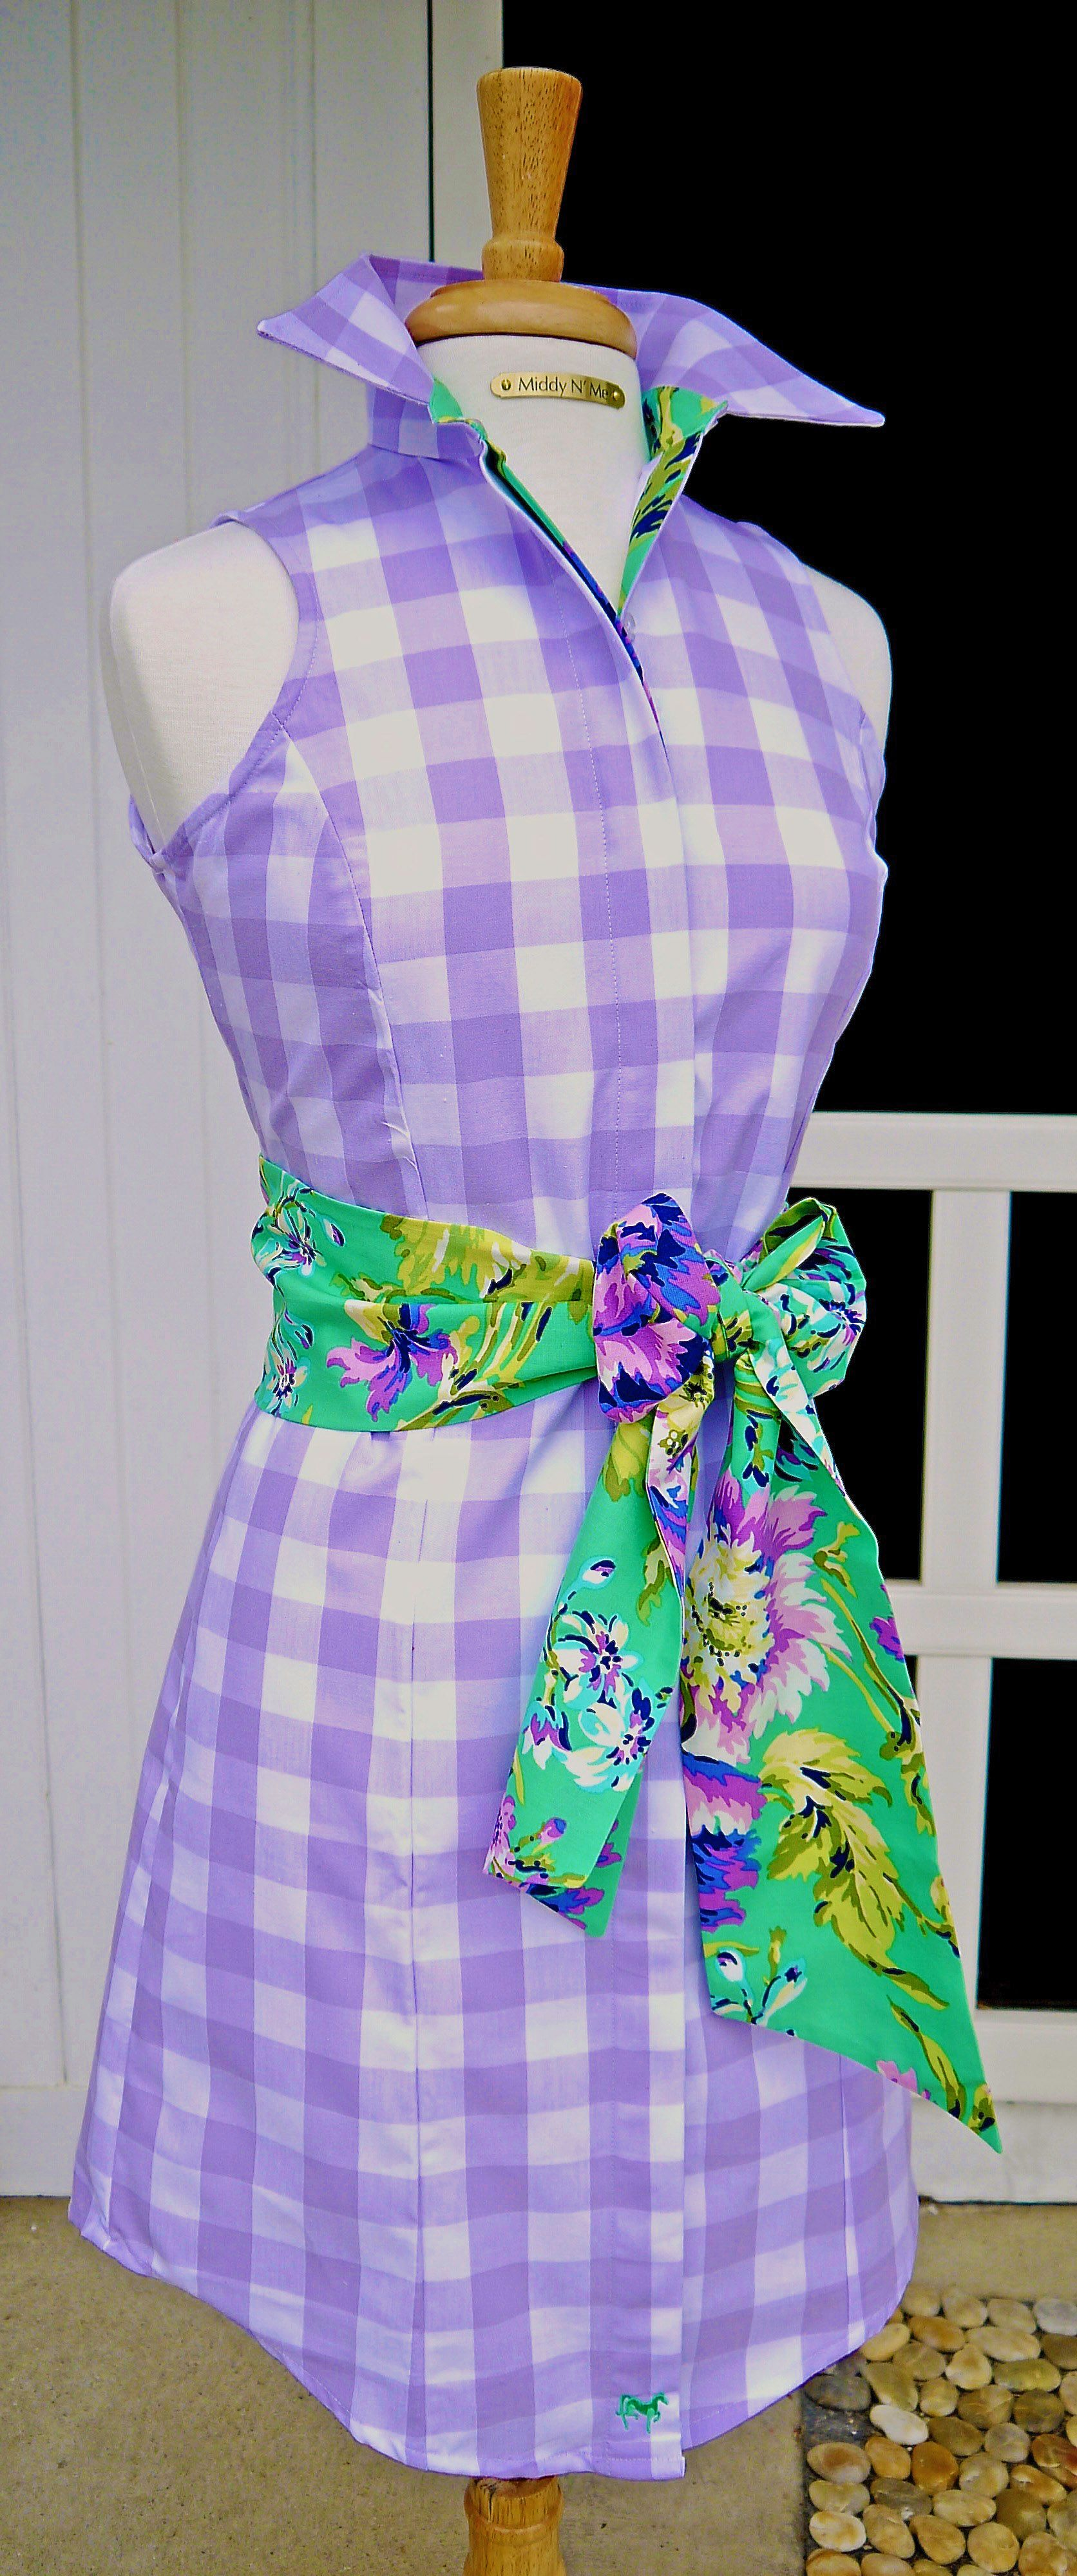 Our darling sweet virginia gingham dress is summer perfection super